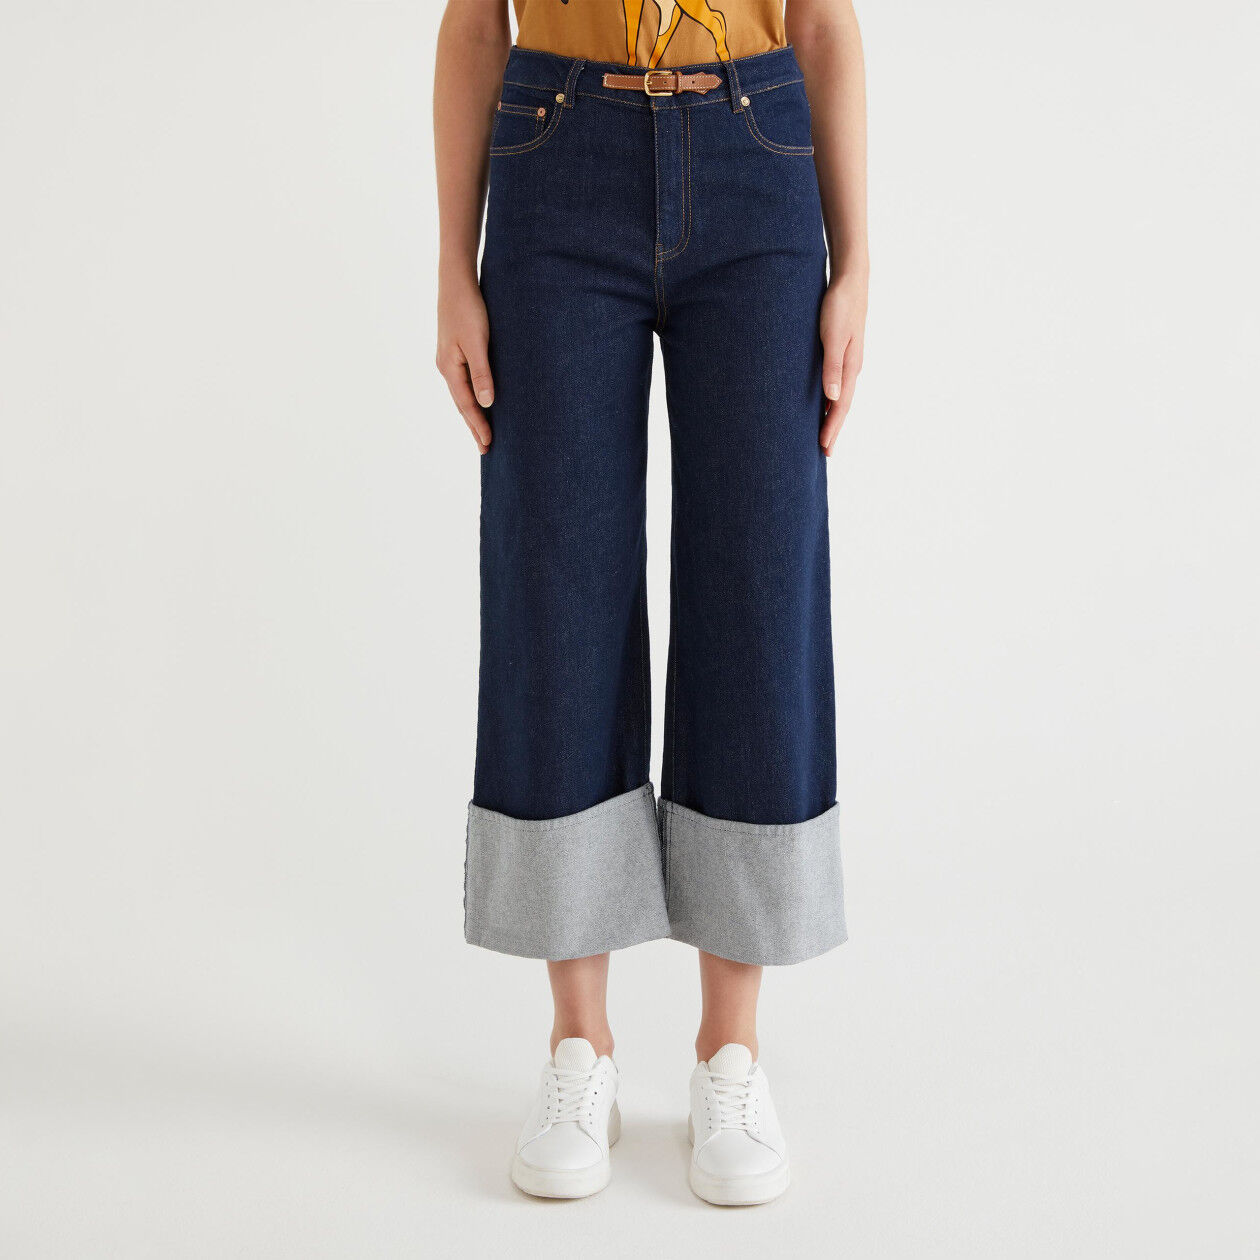 Denim trousers with cuff